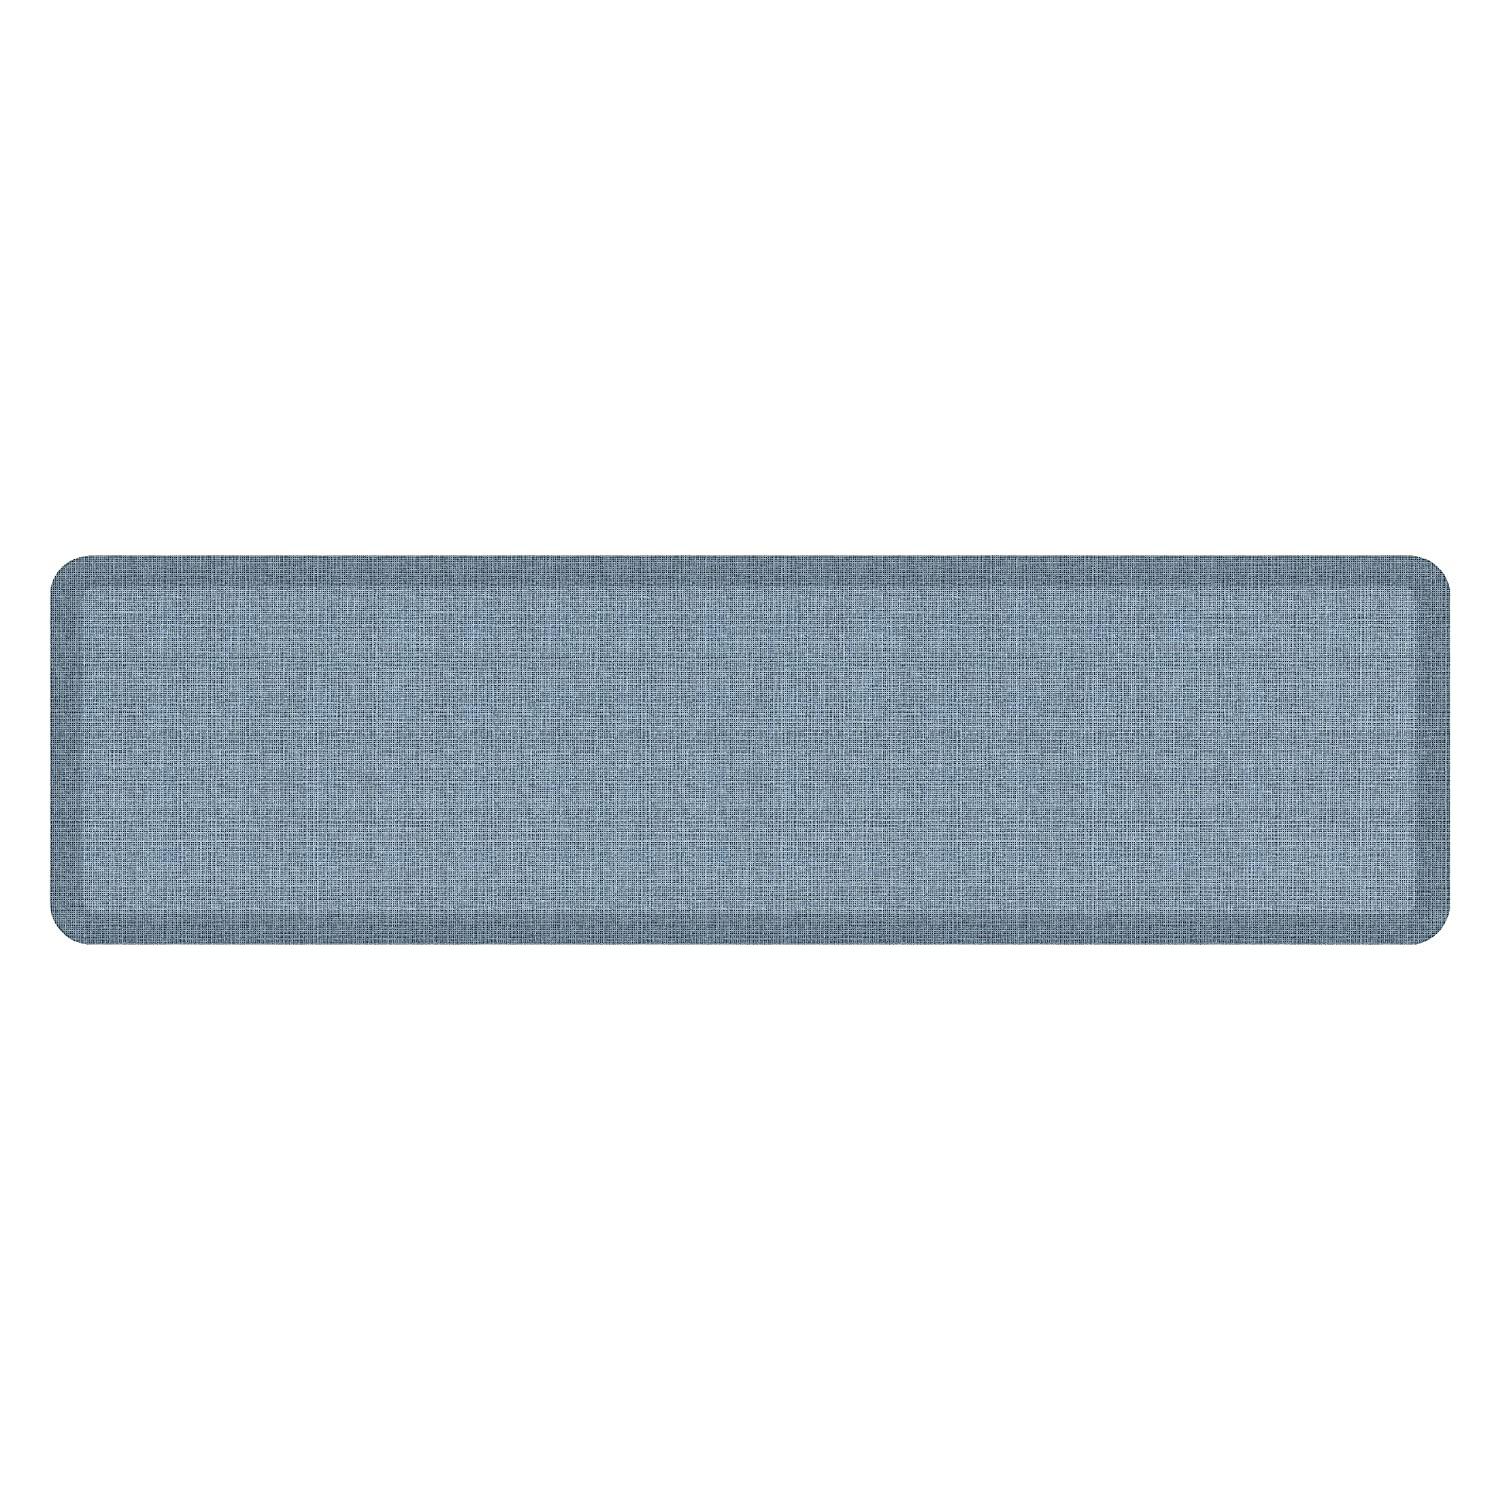 Tweed Hydrangea 20  x 72  NewLife by GelPro Designer Comfort Mat, 20 by 72-Inch, Lattice Mineral Grey